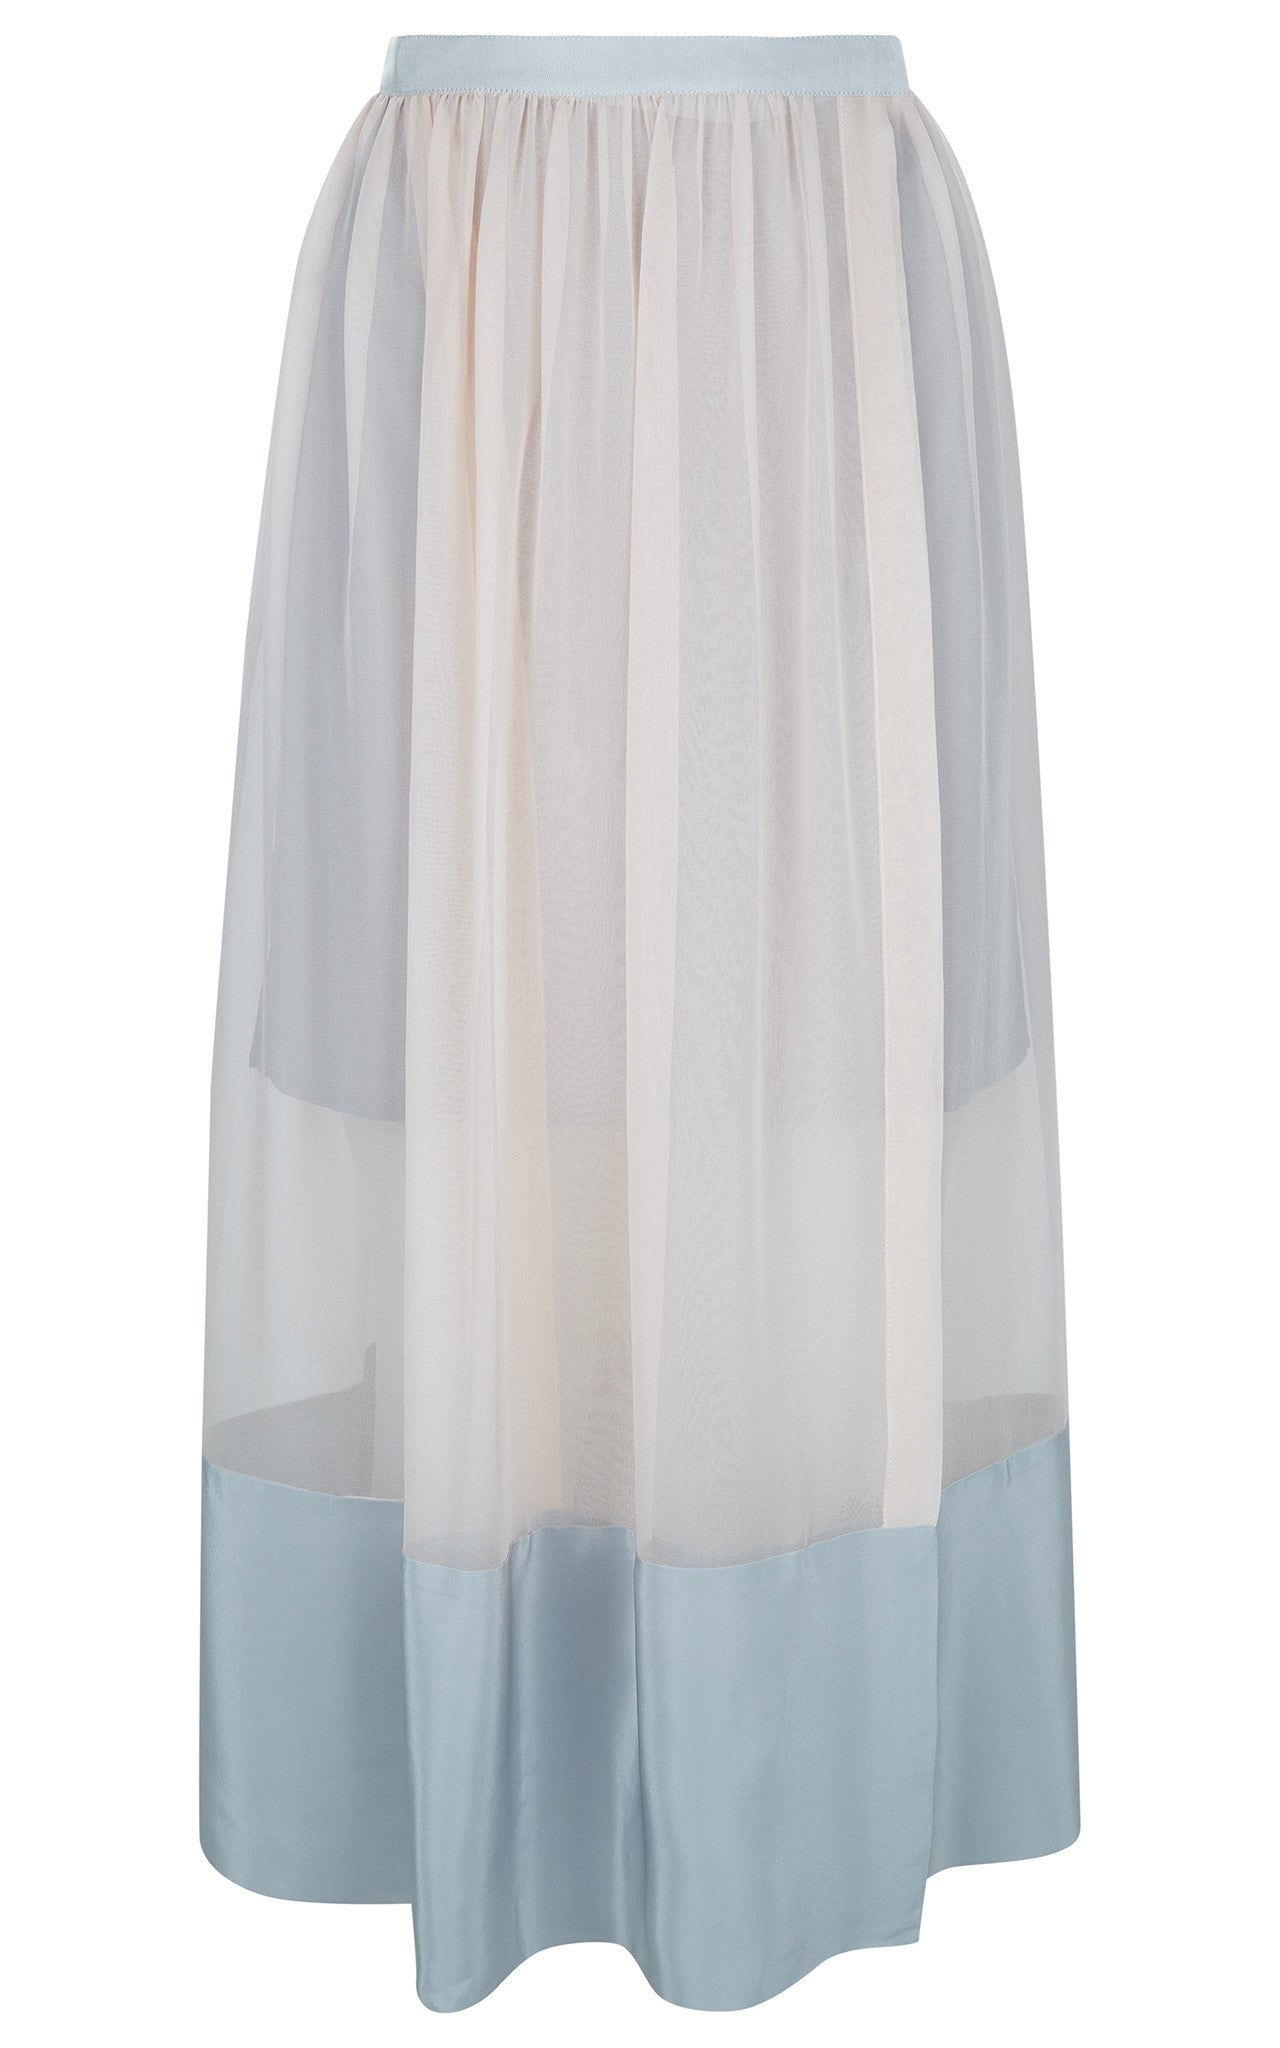 Antipodium Silk Long Gather Skirt in Blush/Silver Front